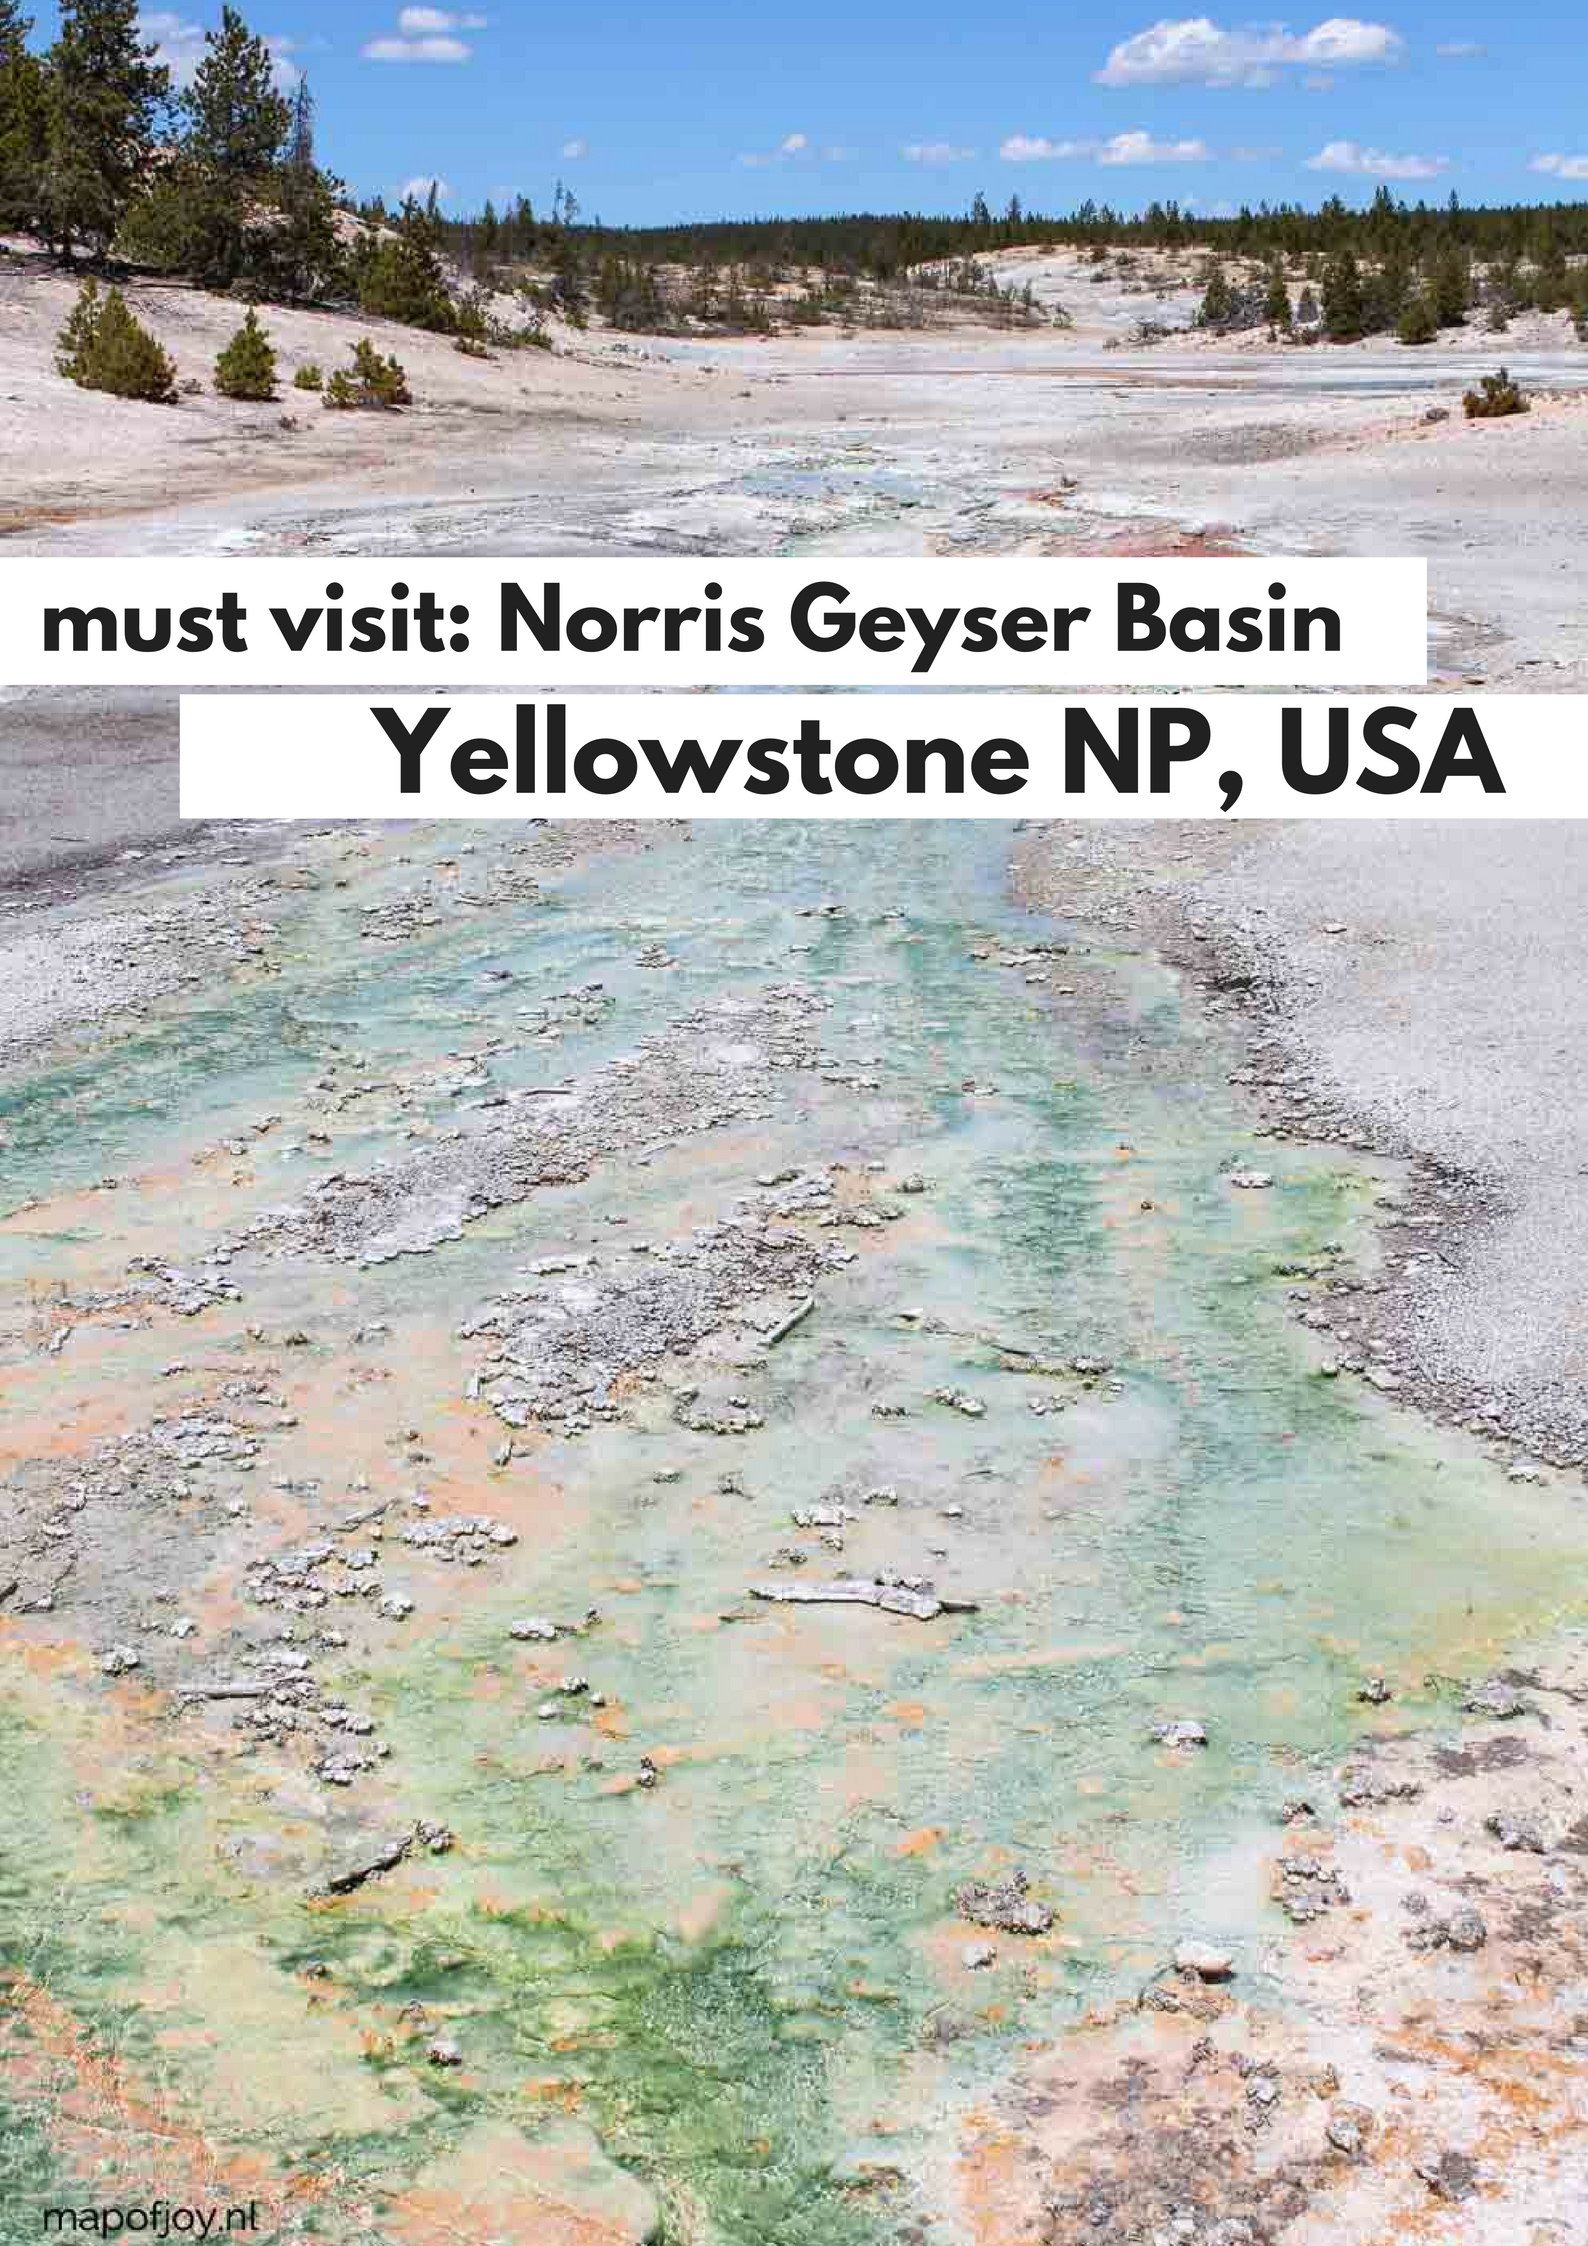 Must visit in Yellowstone NP: the beautiful Norris Geyser Basin - Map of Joy